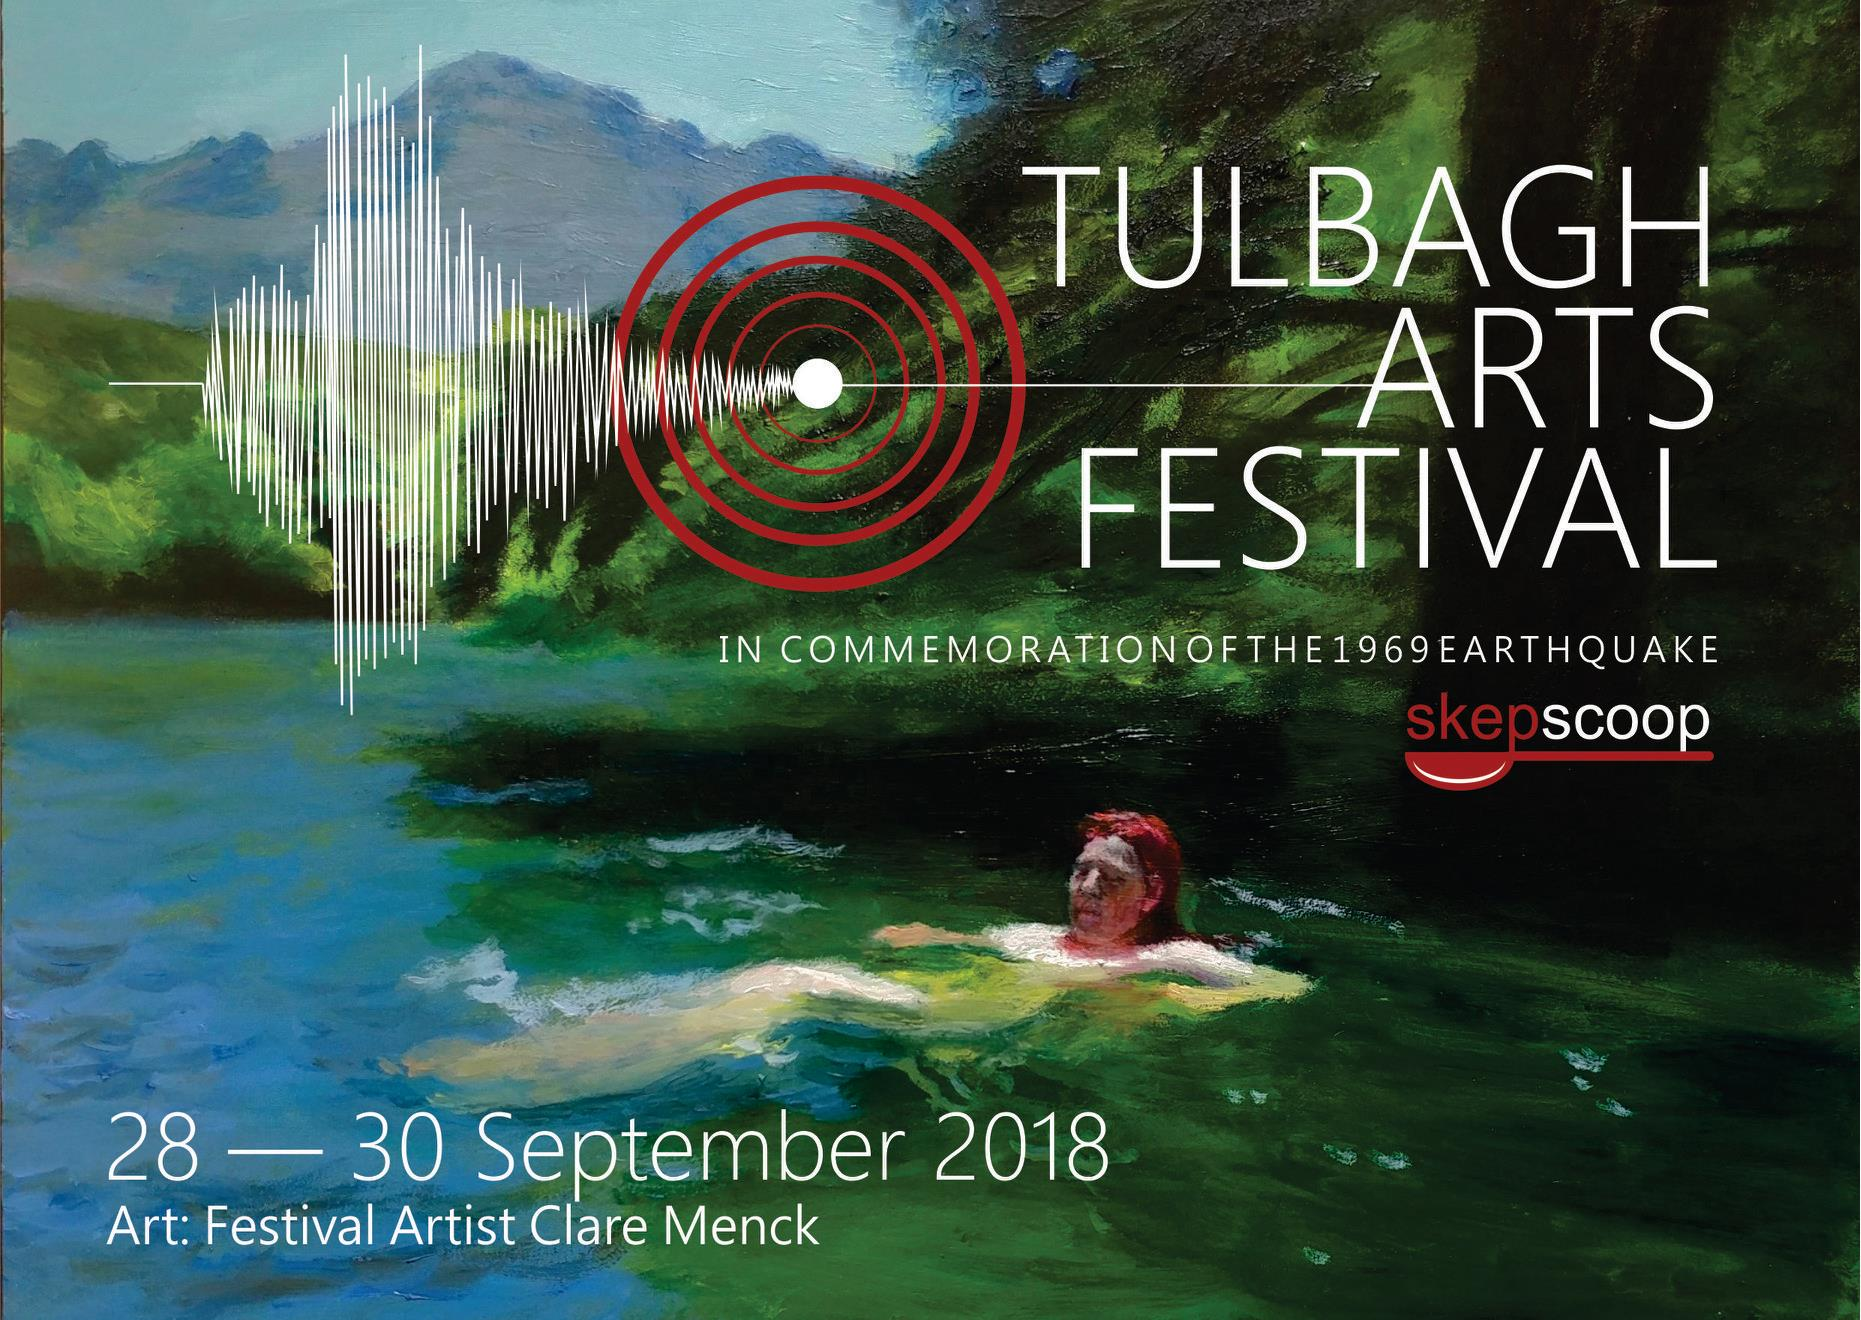 tulbagh-arts-festival-2018